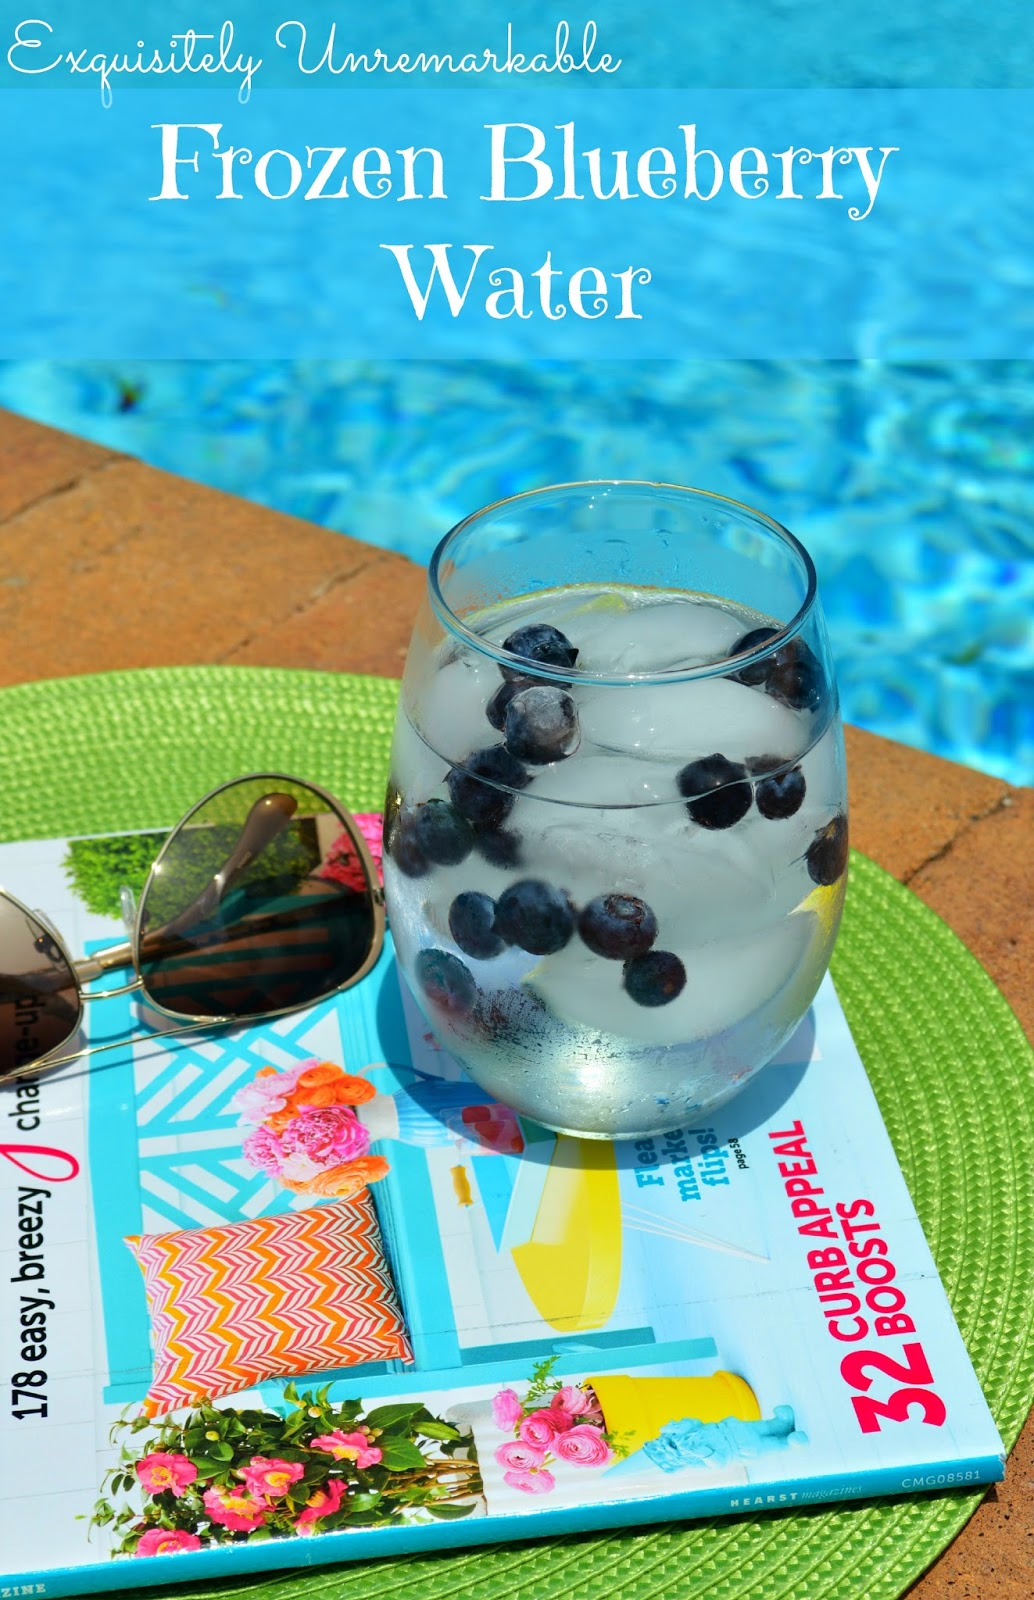 Frozen Blueberry Water on a magazine next to the pool